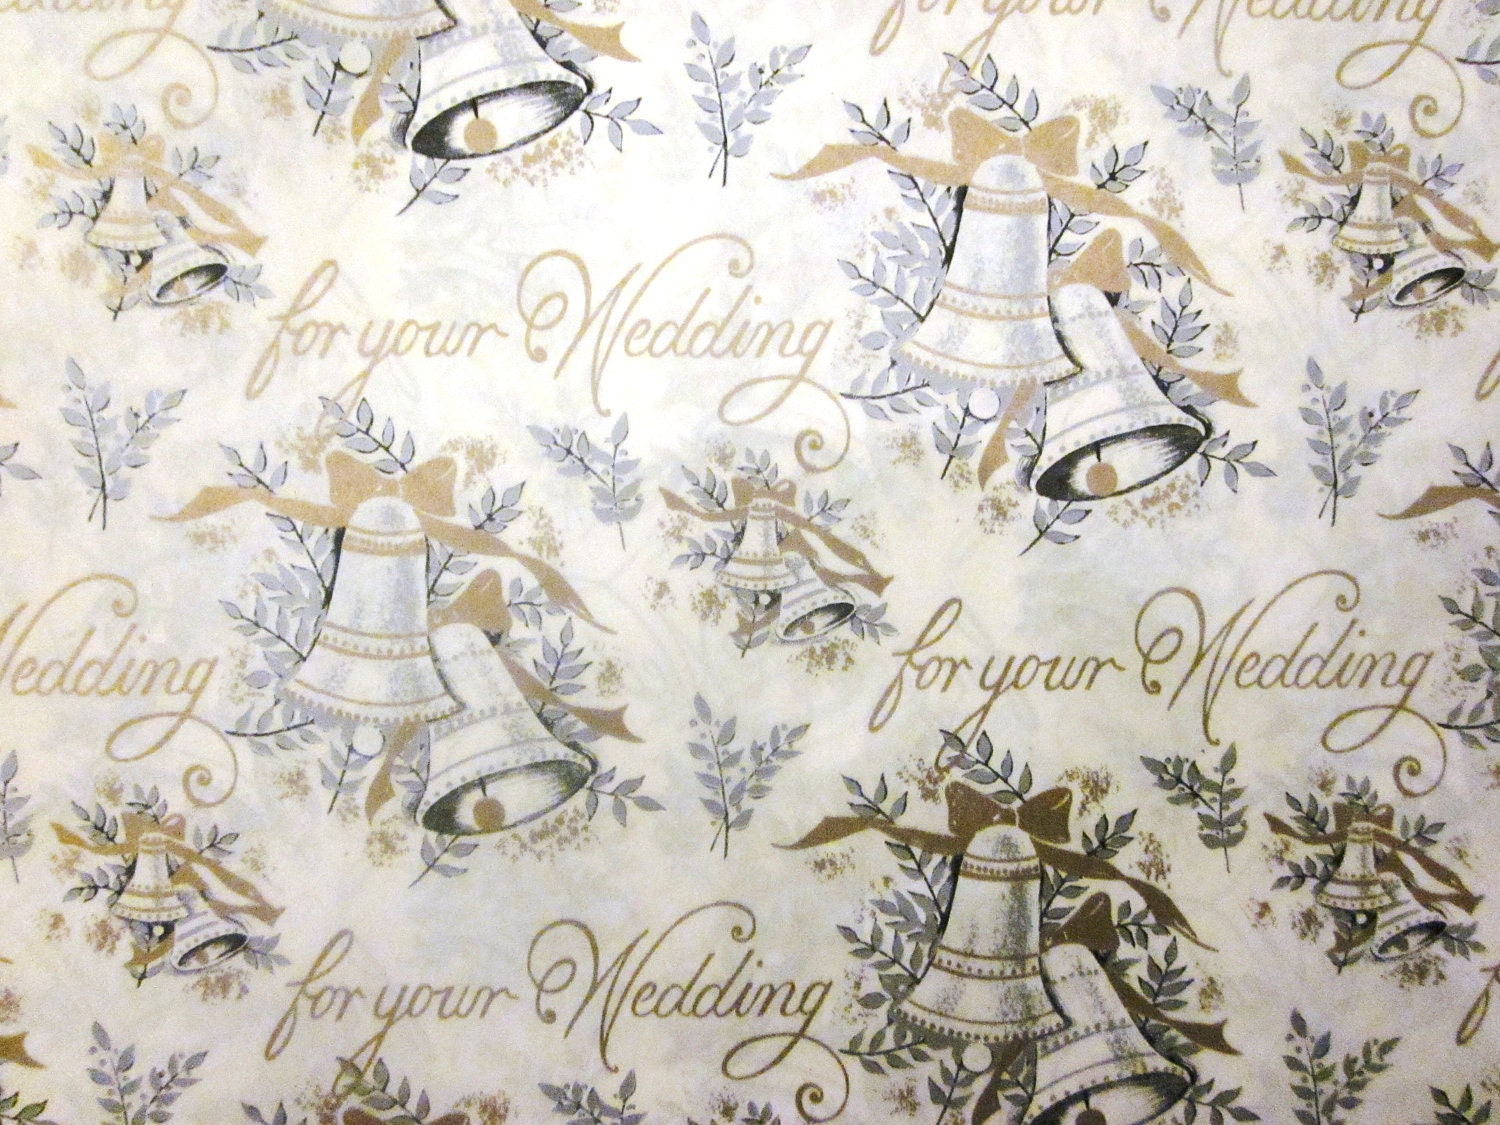 Wedding Gift Paper: Vintage Wrapping Paper For Your Wedding Full Sheet